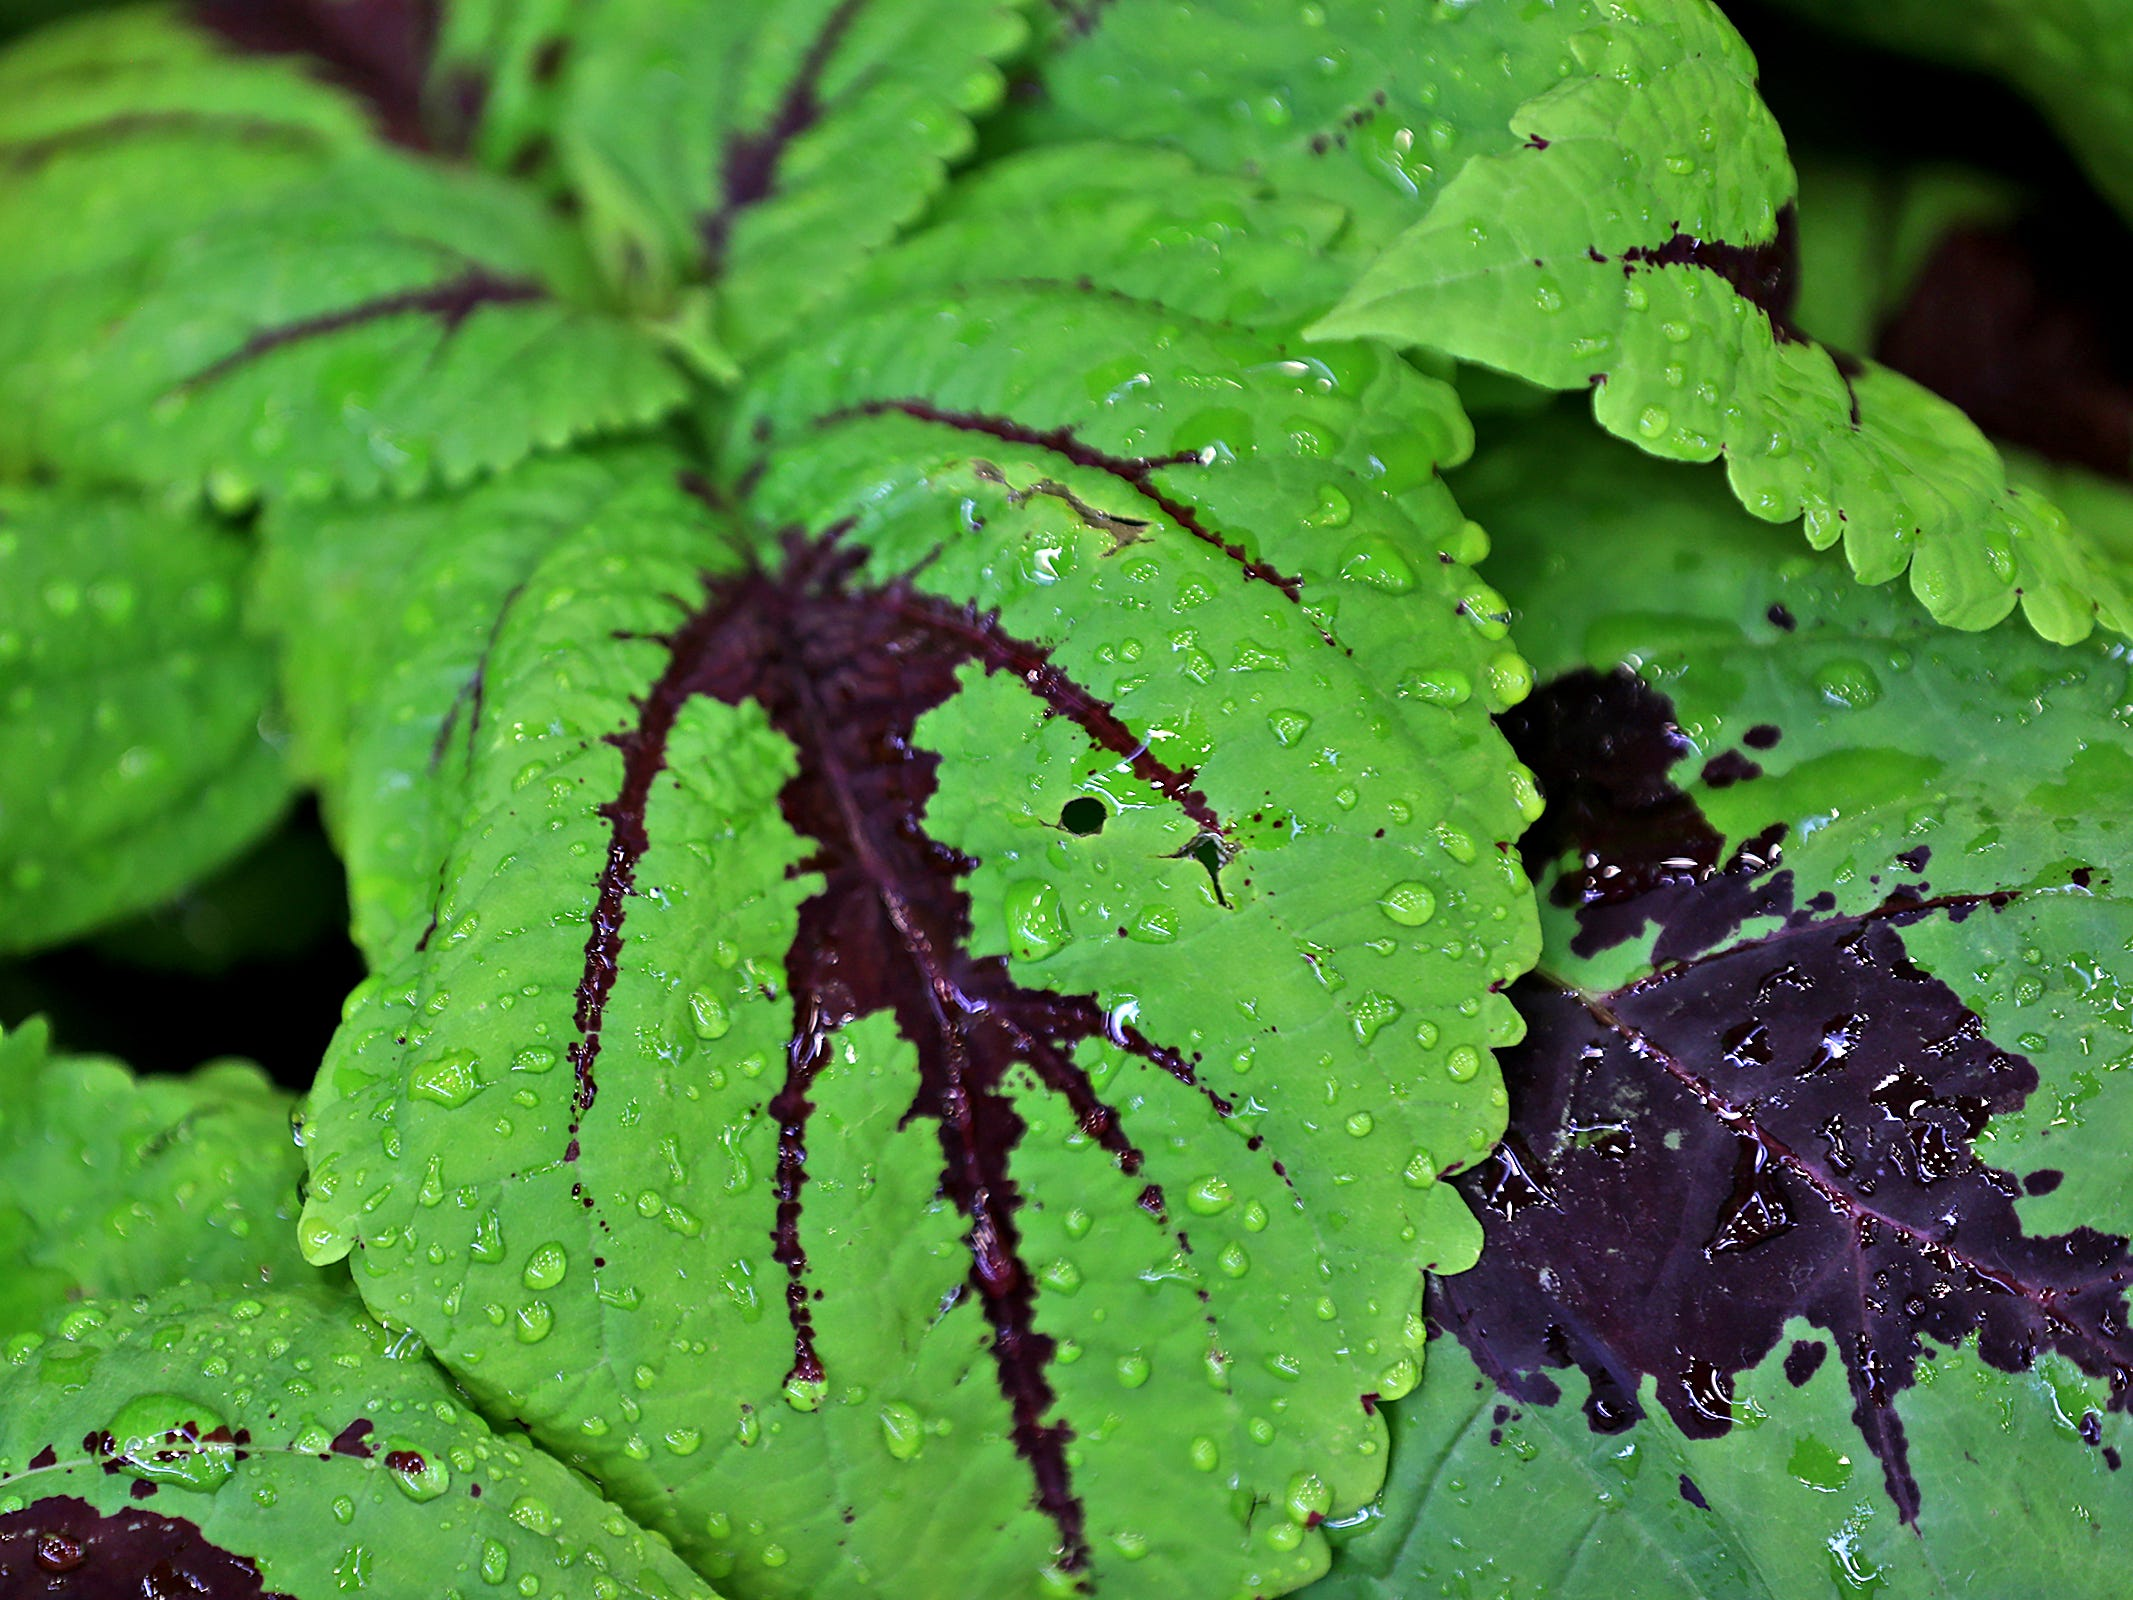 Water droplets bead on the leaves of this plant at the Indiana Flower + Patio Show, at the Indiana State Fairgrounds, Sunday, March 10, 2019.